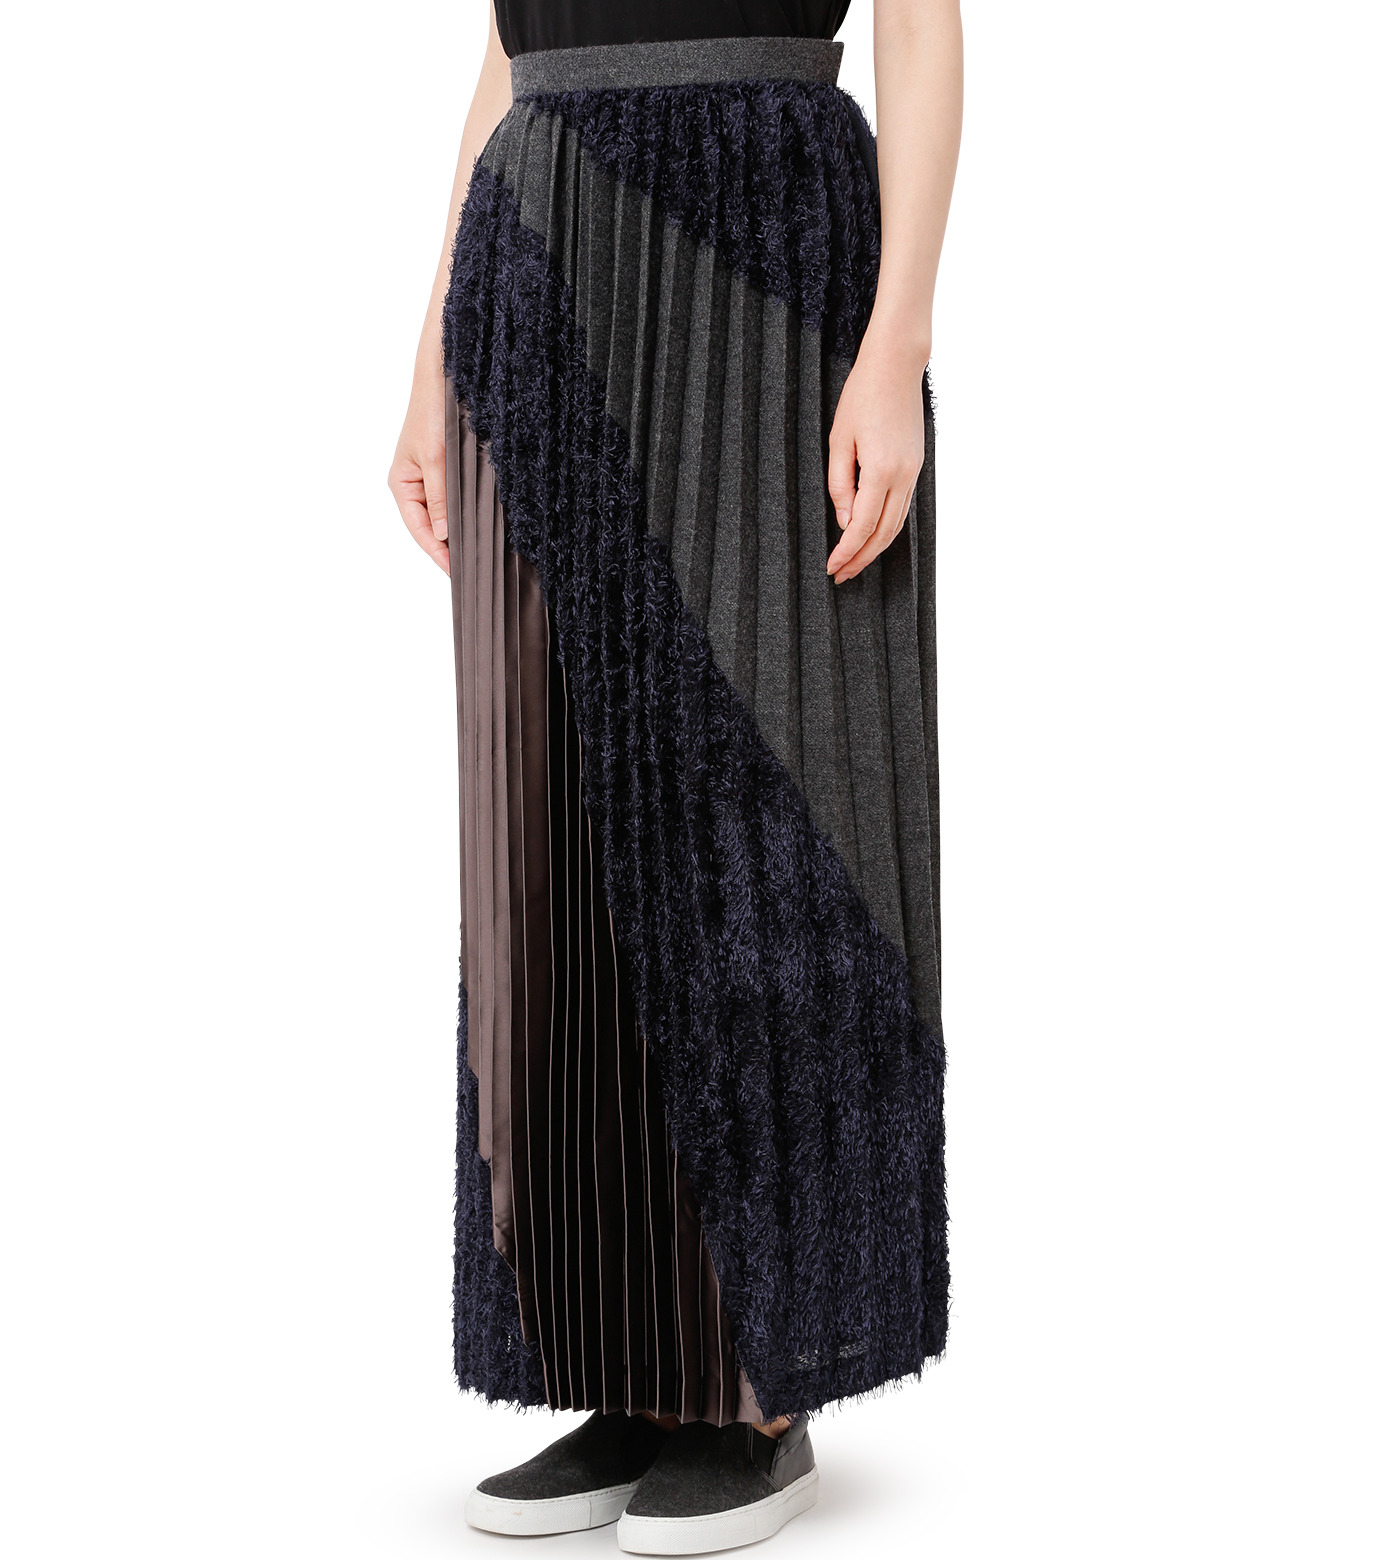 KOLOR(カラー)のLong Pleated Skirt Mixed Jacquard-NAVY(スカート/skirt)-16WCL-S03129-93 拡大詳細画像1